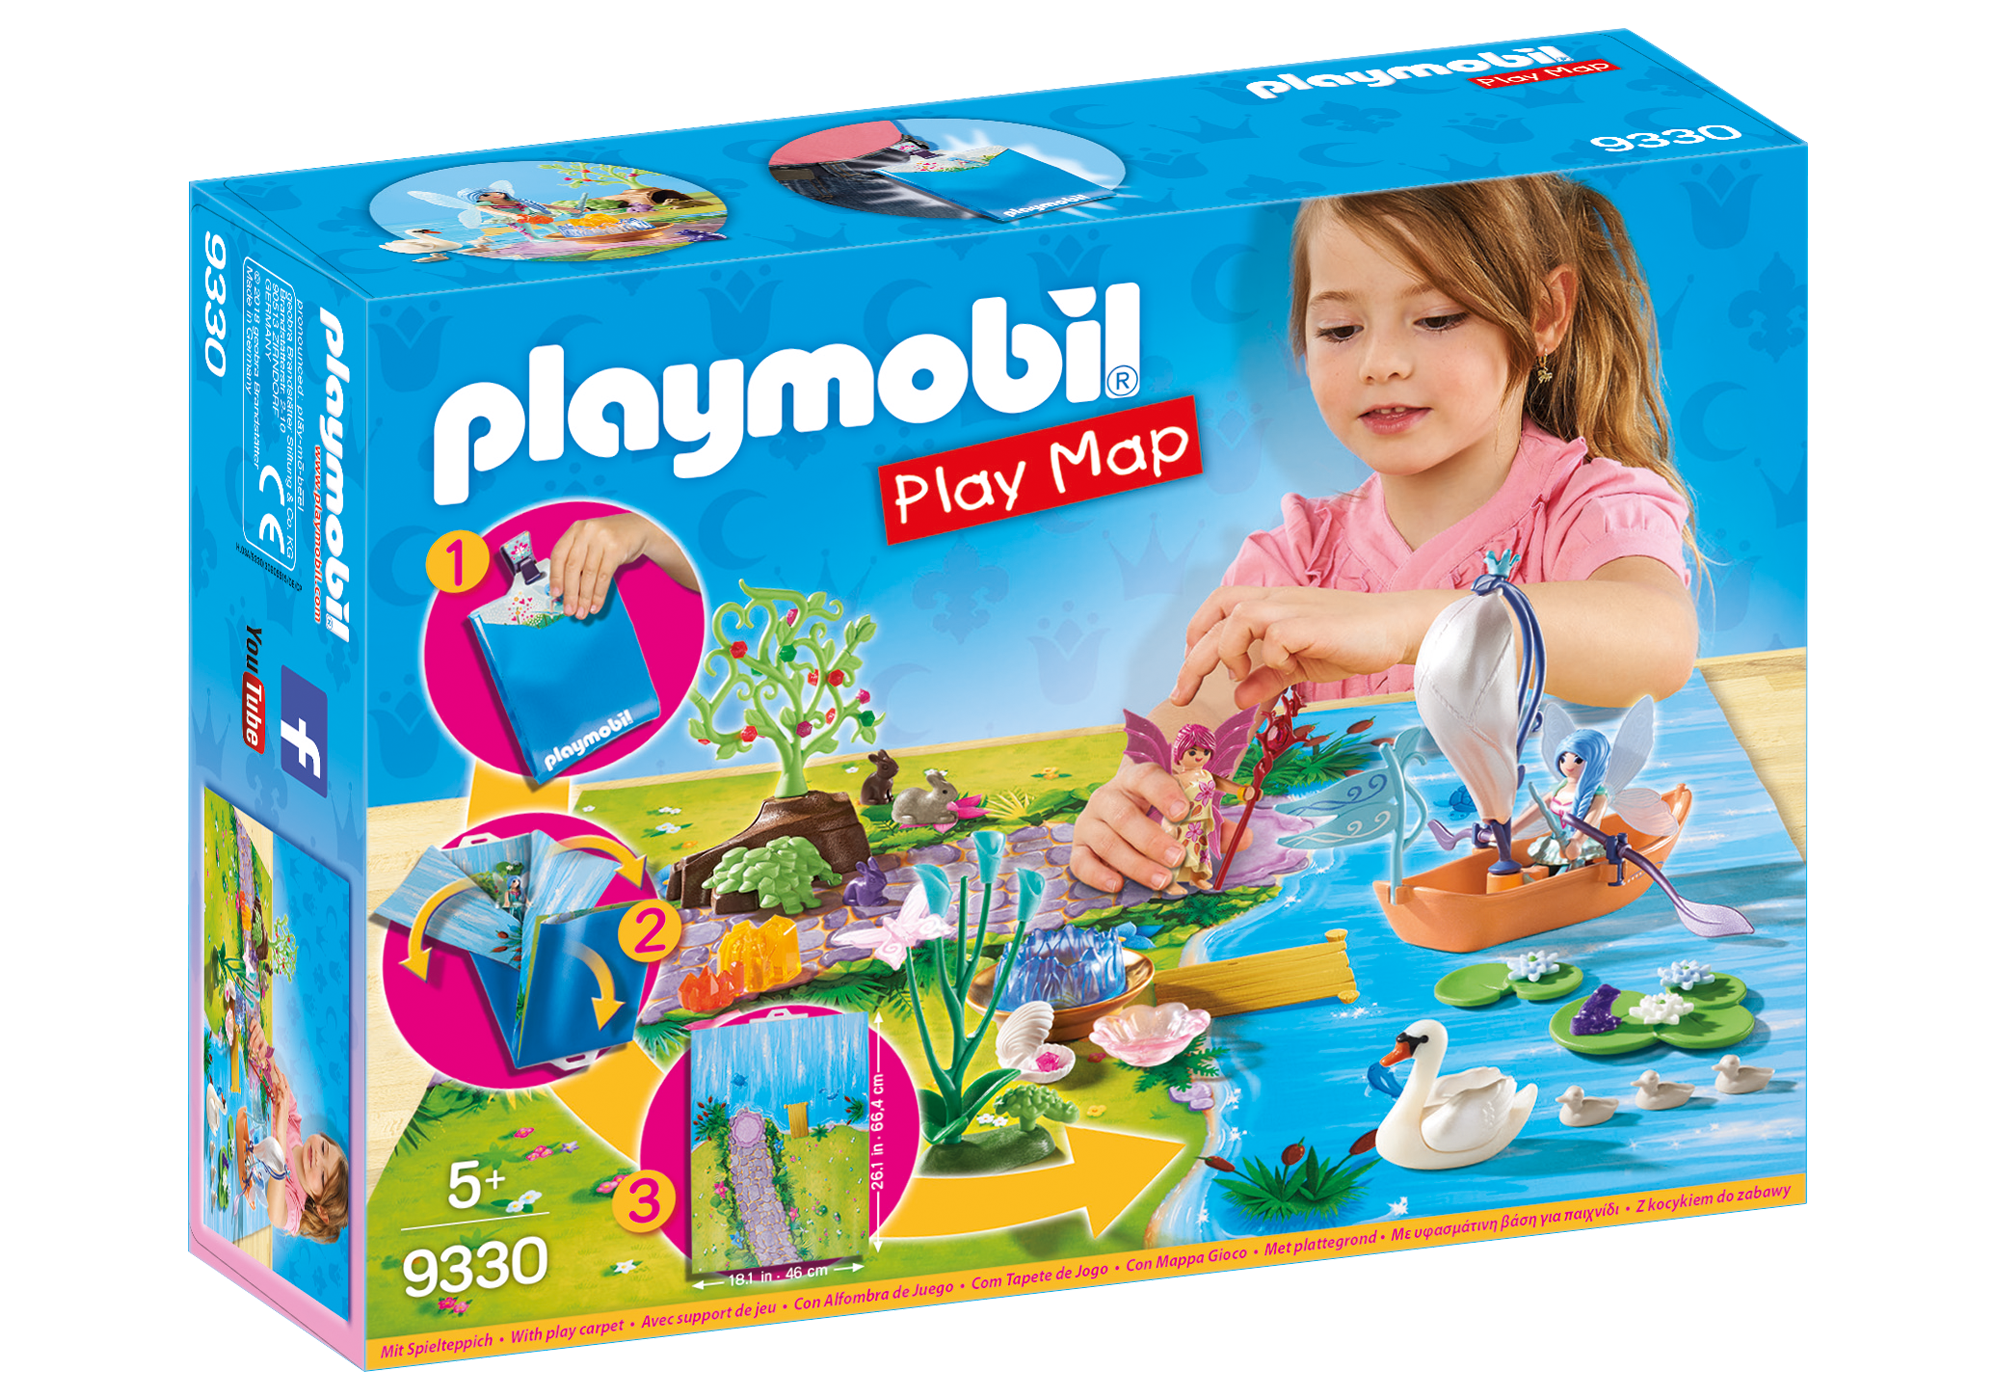 http://media.playmobil.com/i/playmobil/9330_product_box_front/Play Map - Il lago delle Fate